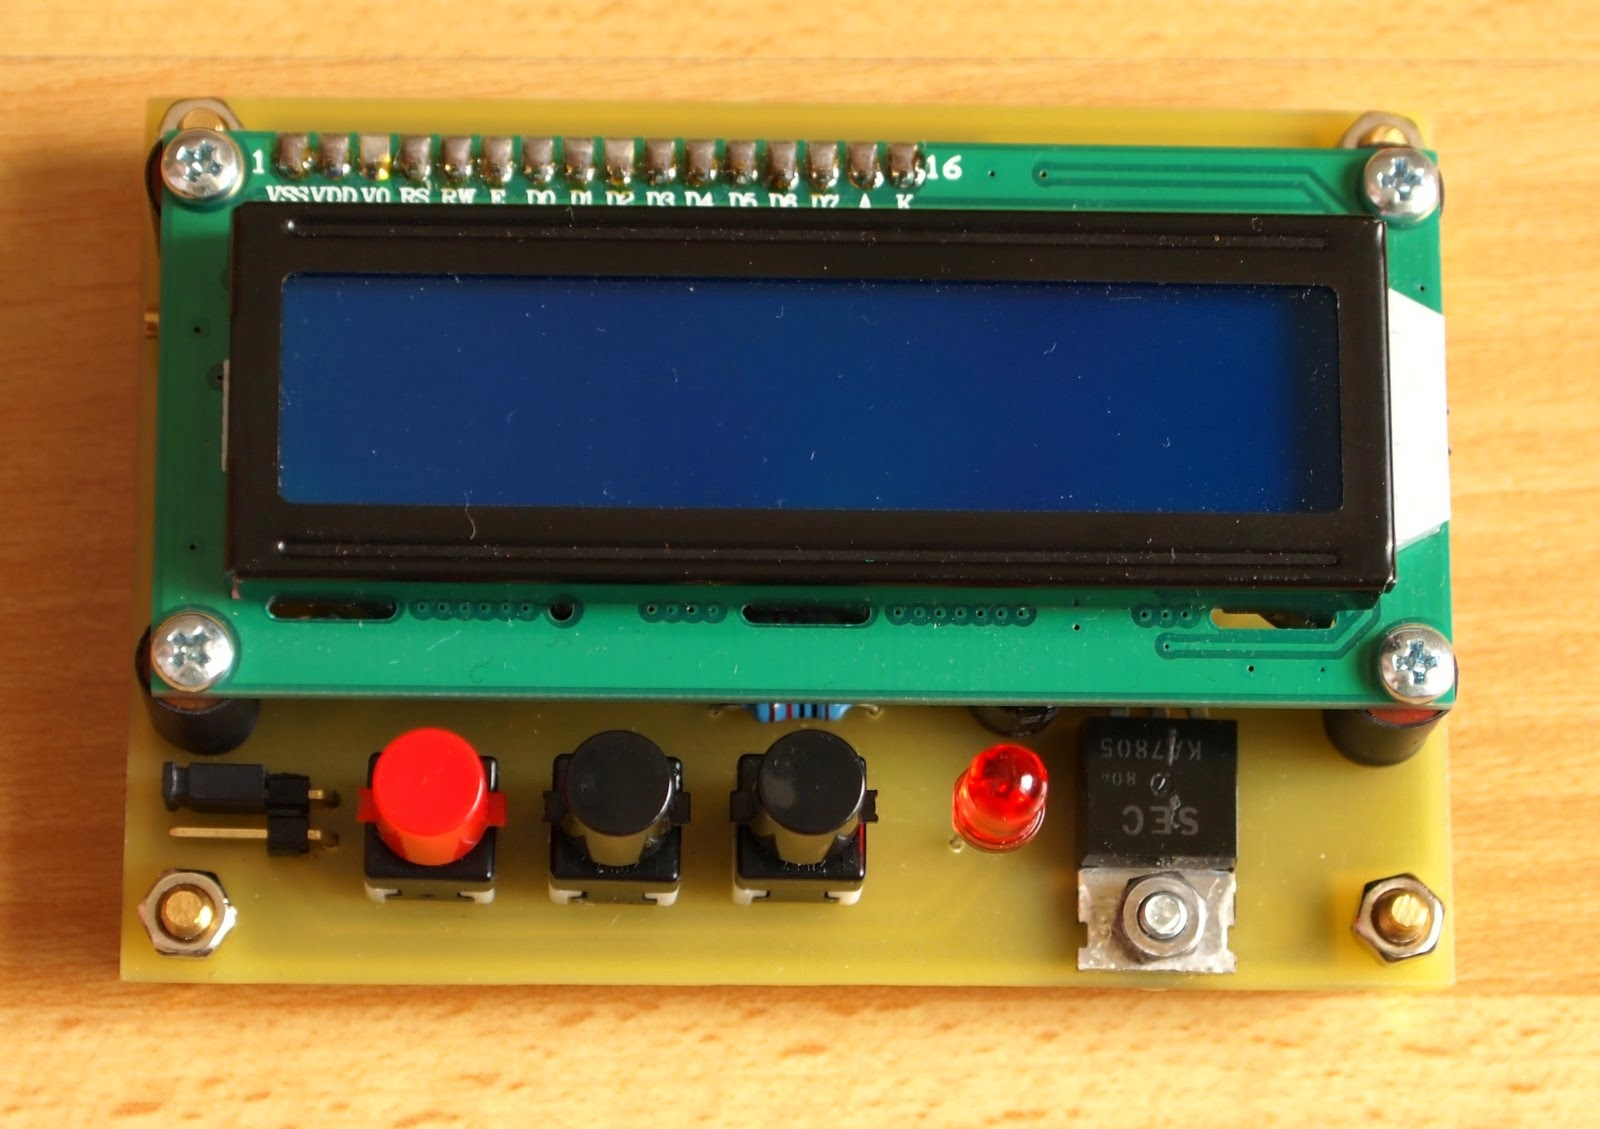 Simple Timer With Pic16f628a Electronics Lab Electronic Stopwatch Circuit Design This Is A Quick Project For Recently I Finished My Uv Light Exposure Box And Thought That It Will Be Convenient To Have Build In Switch